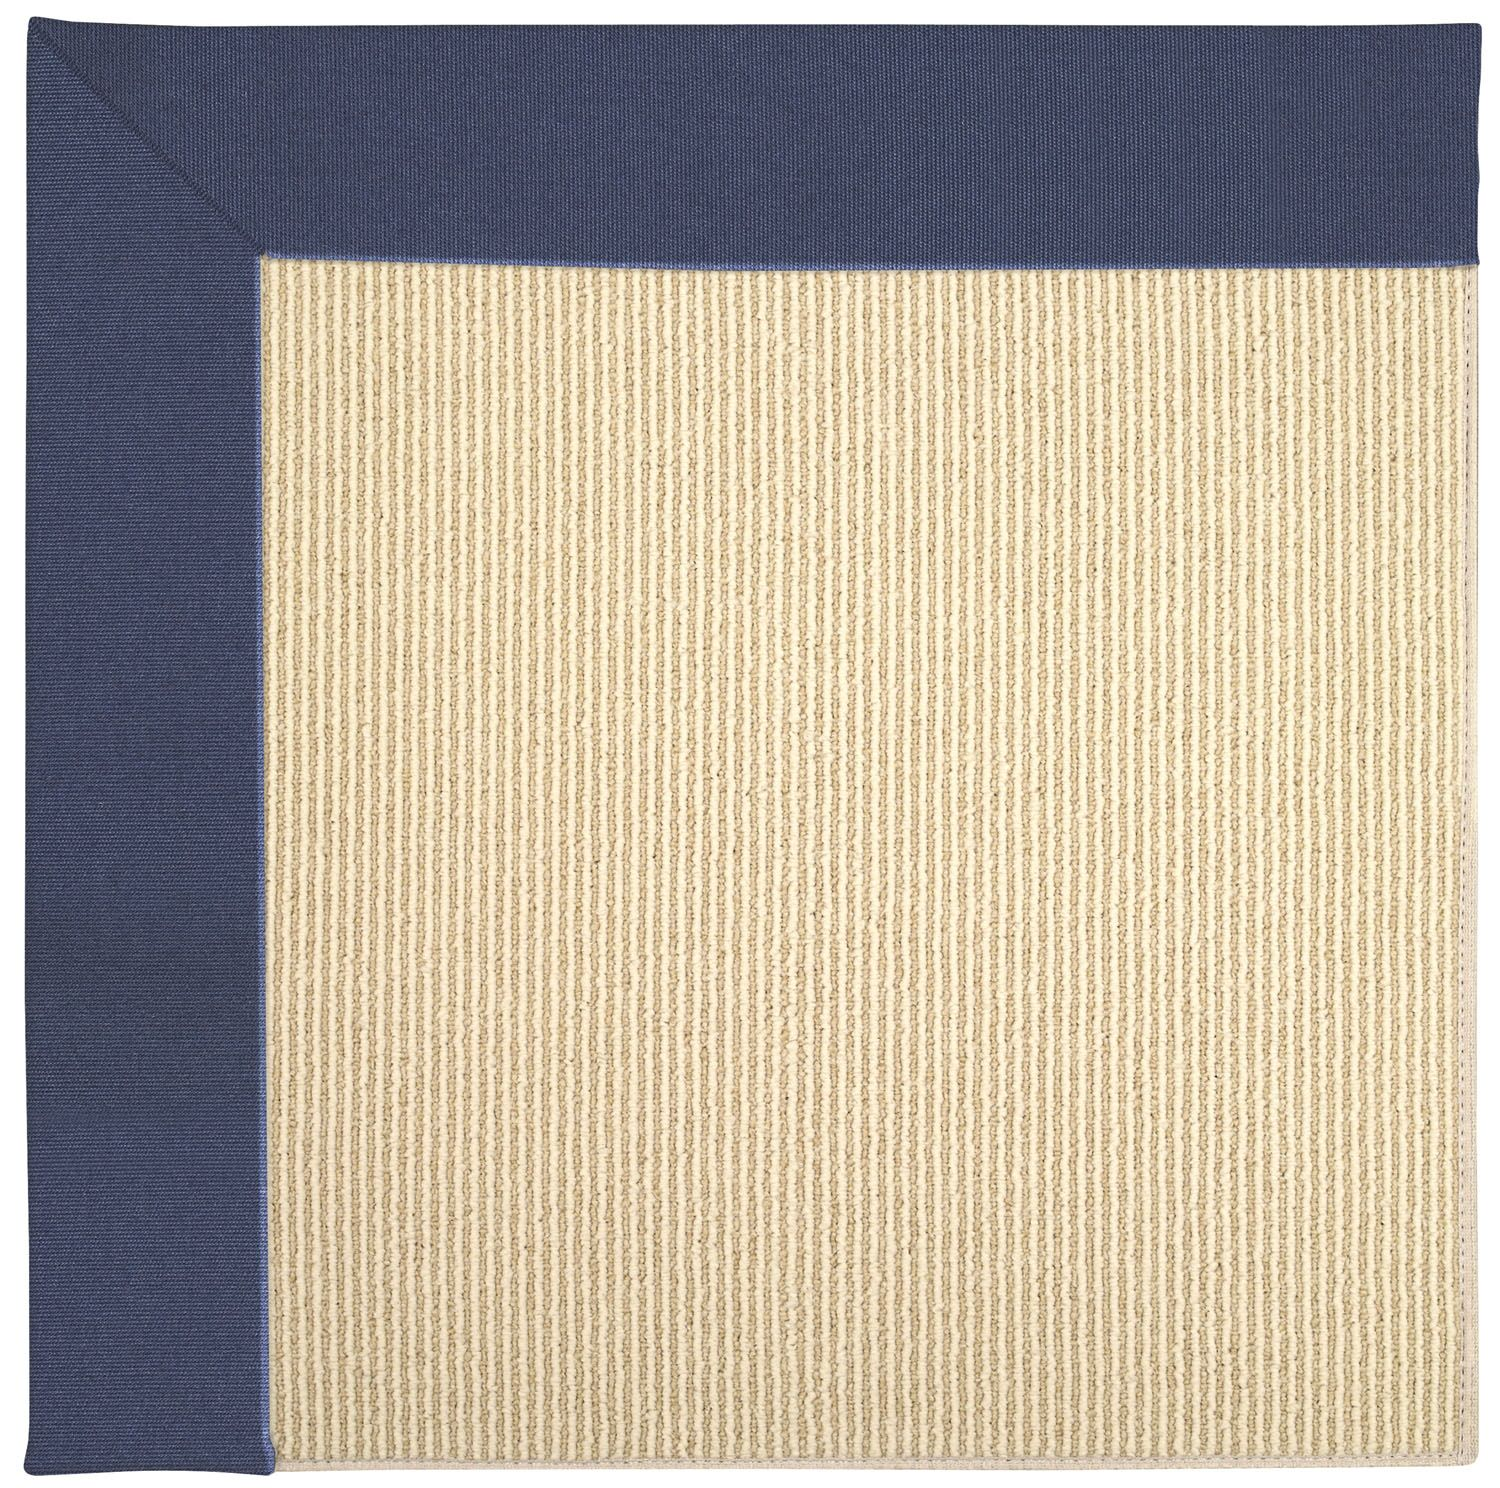 Lisle Machine Tufted Blue/Beige Indoor/Outdoor Area Rug Rug Size: Square 6'